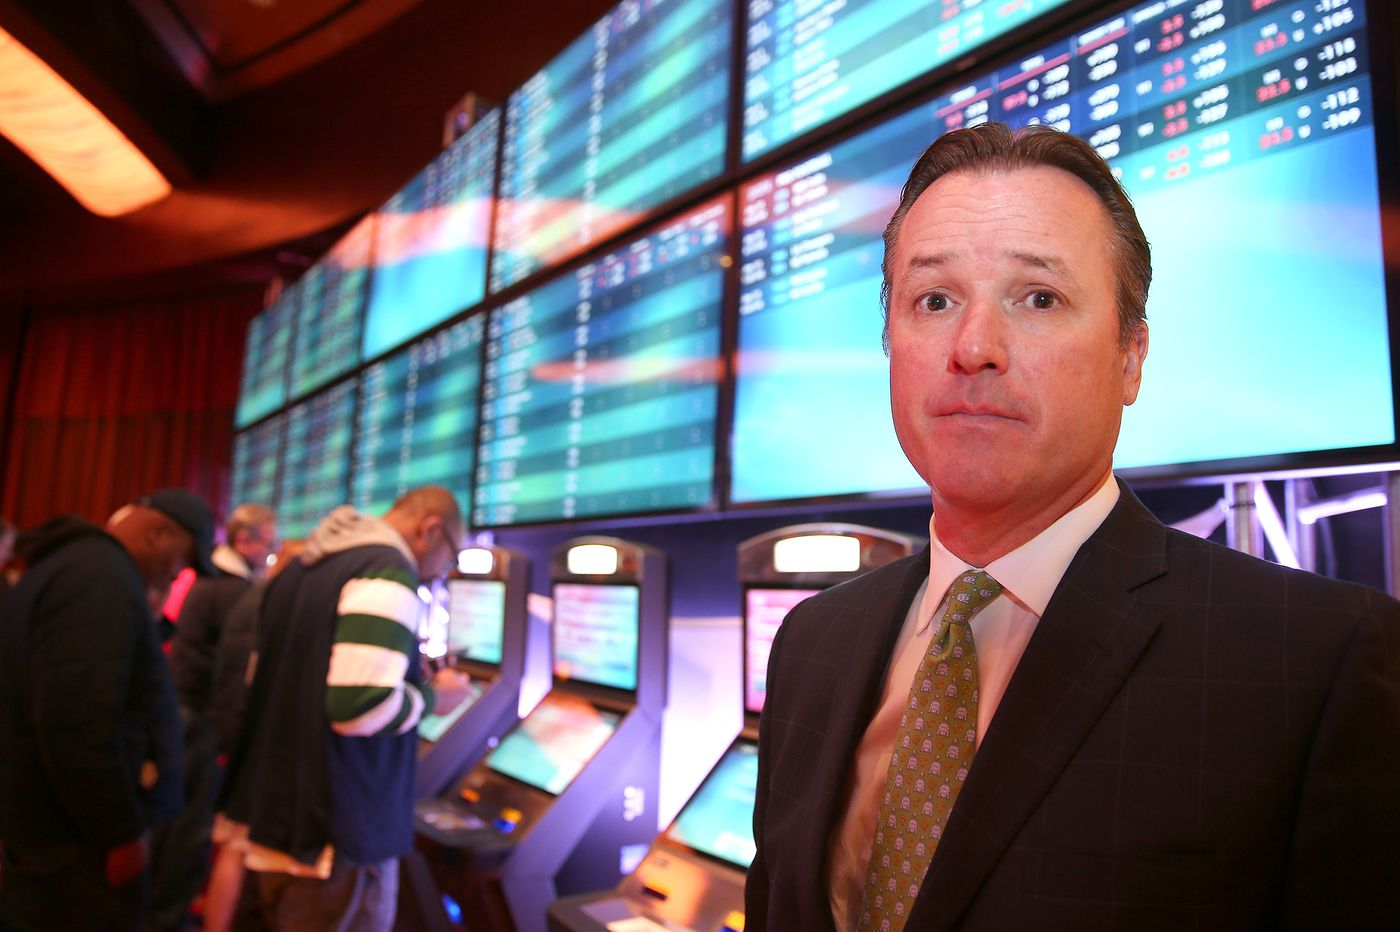 Parx looking to save sports bettors time with kiosks, mobile odds program | Betting notebook